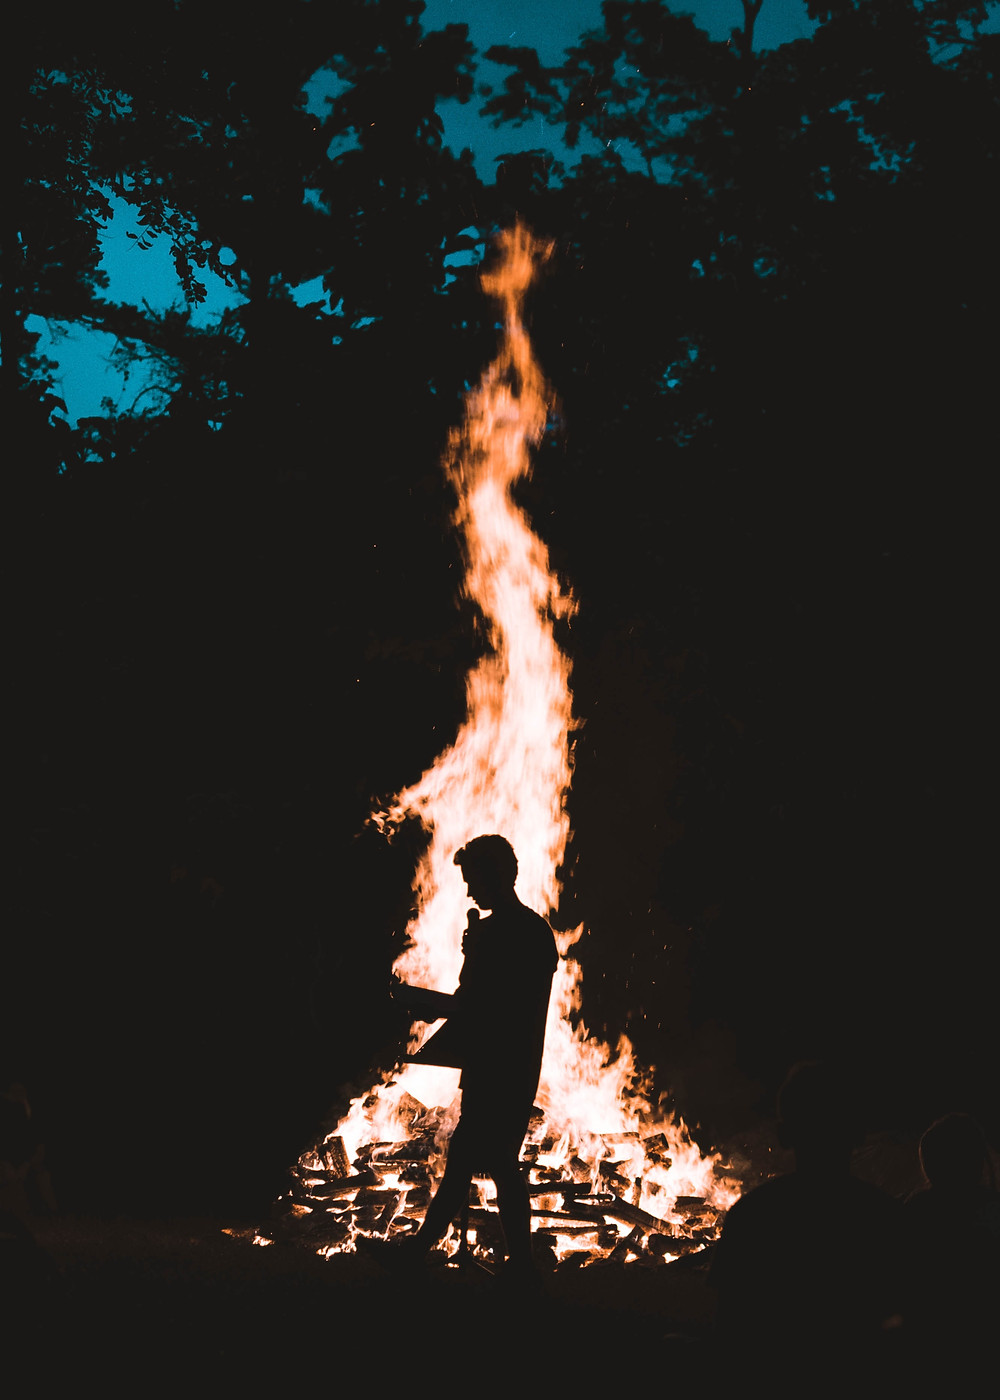 pillar of flame and shadow of a person